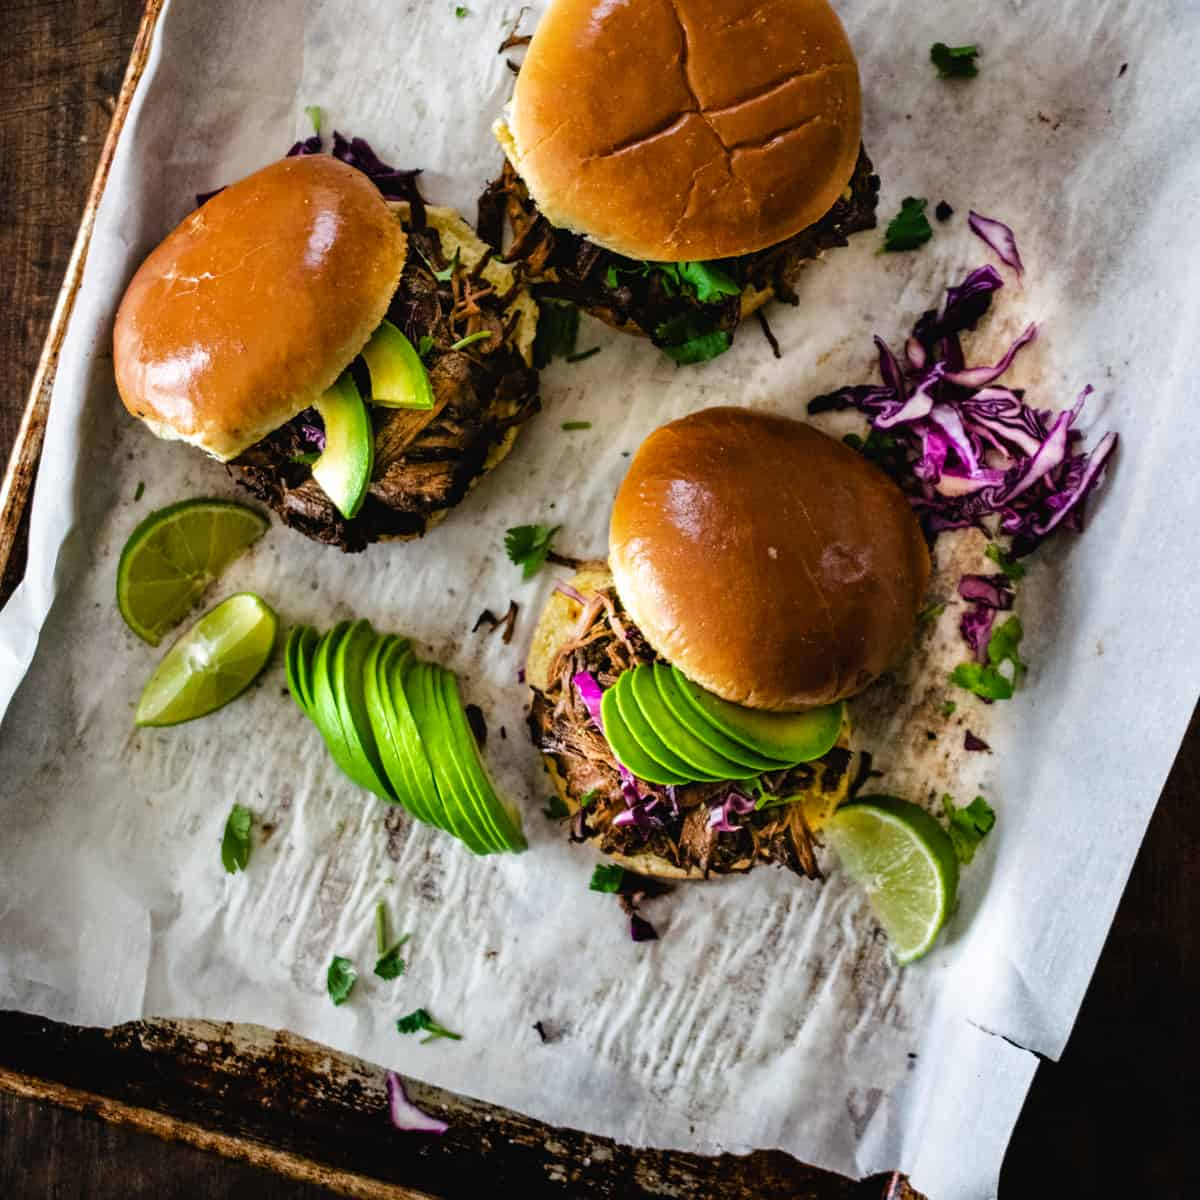 Three shredded beef sandwiches topped with avocado and lime.